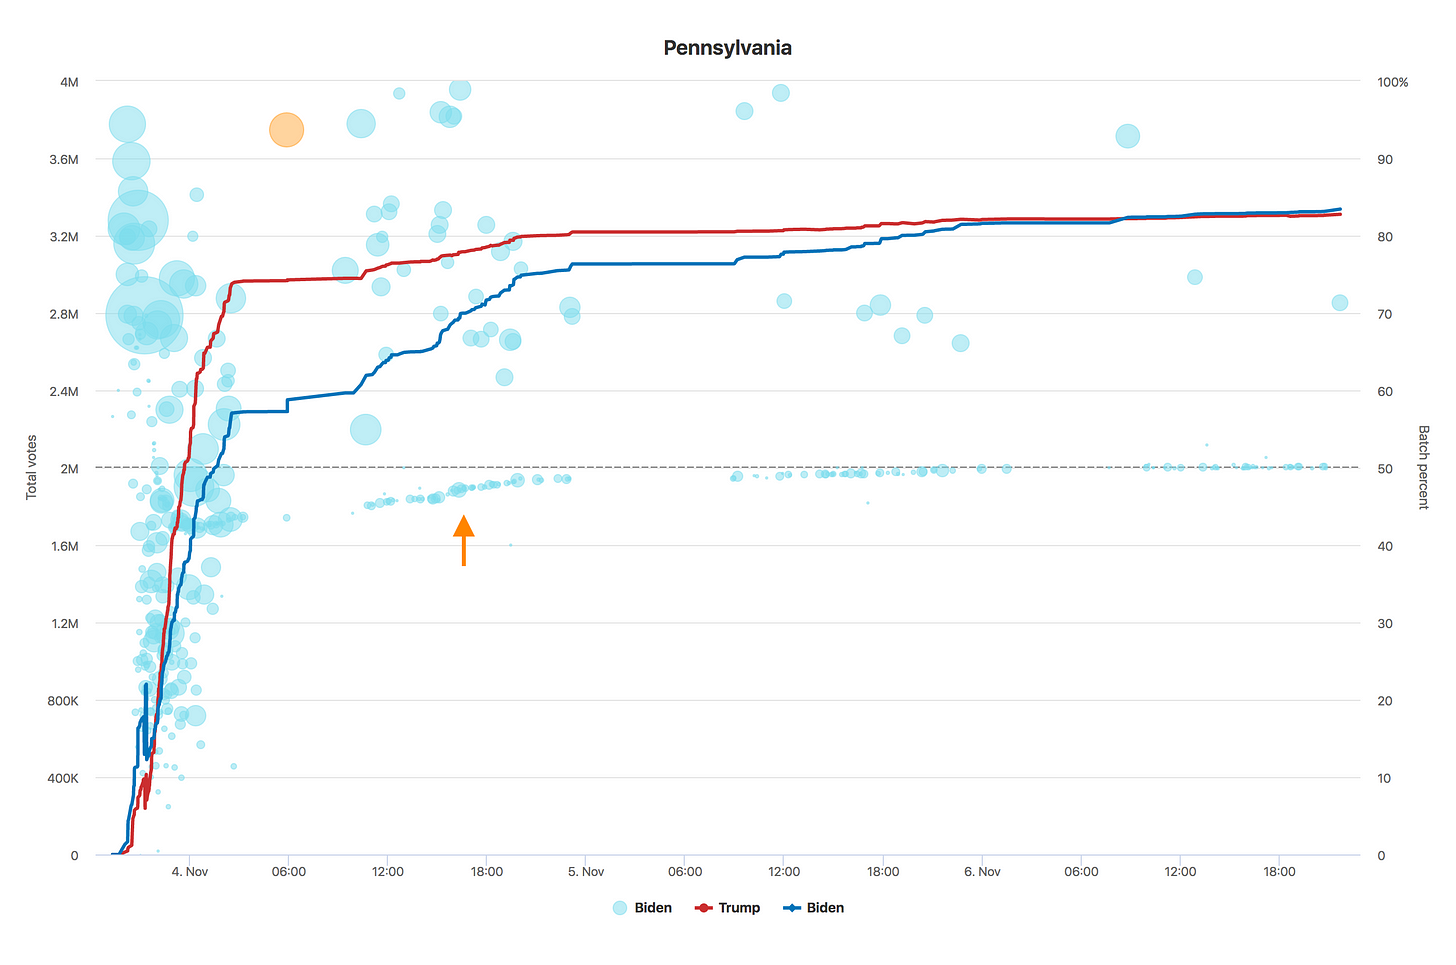 Chart of Pennsylvania voting data over time